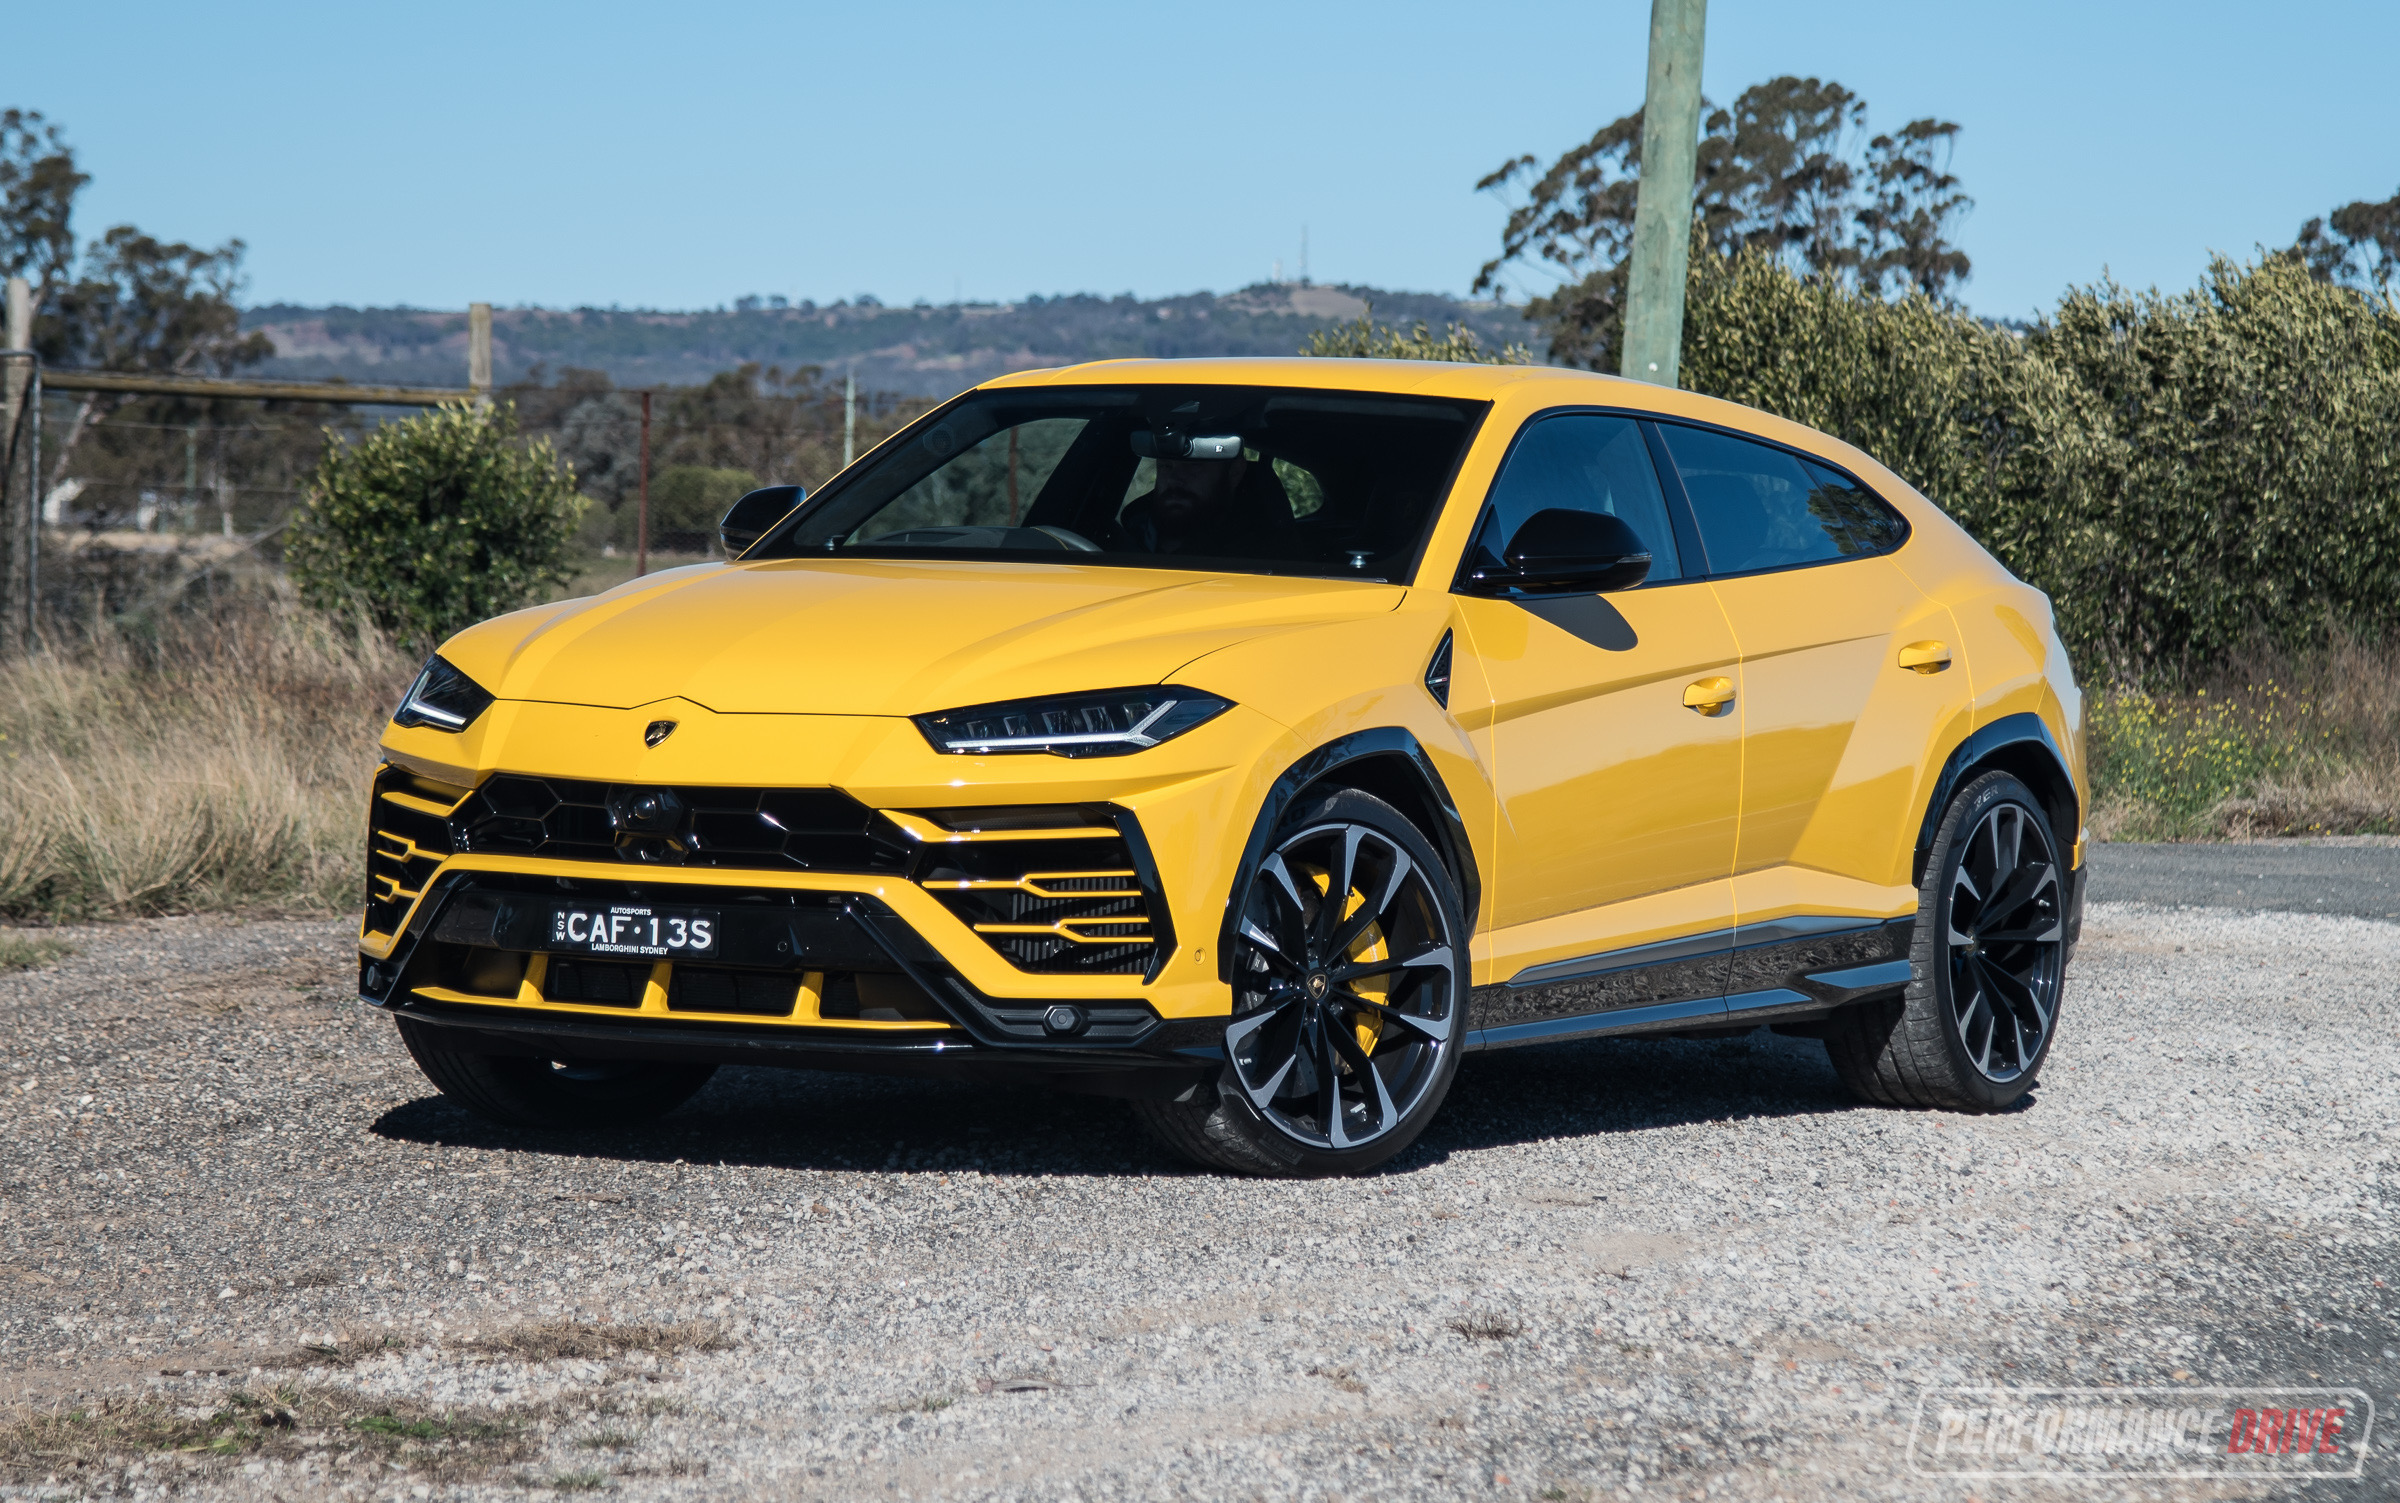 2019 Lamborghini Urus Review Video Performancedrive